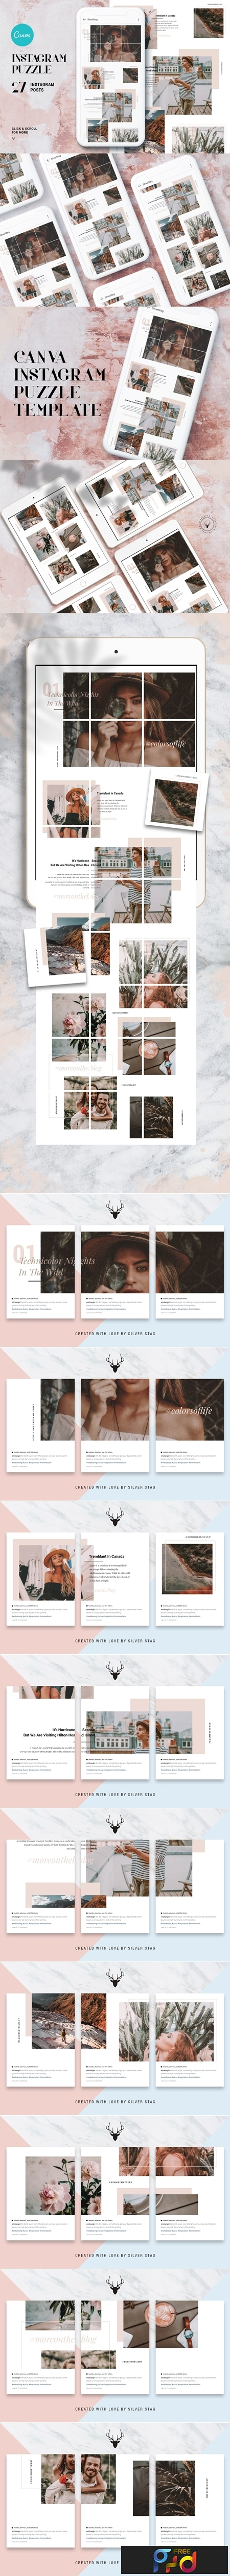 InstaGrid 1.0 Canva Puzzle Template 3823623 1